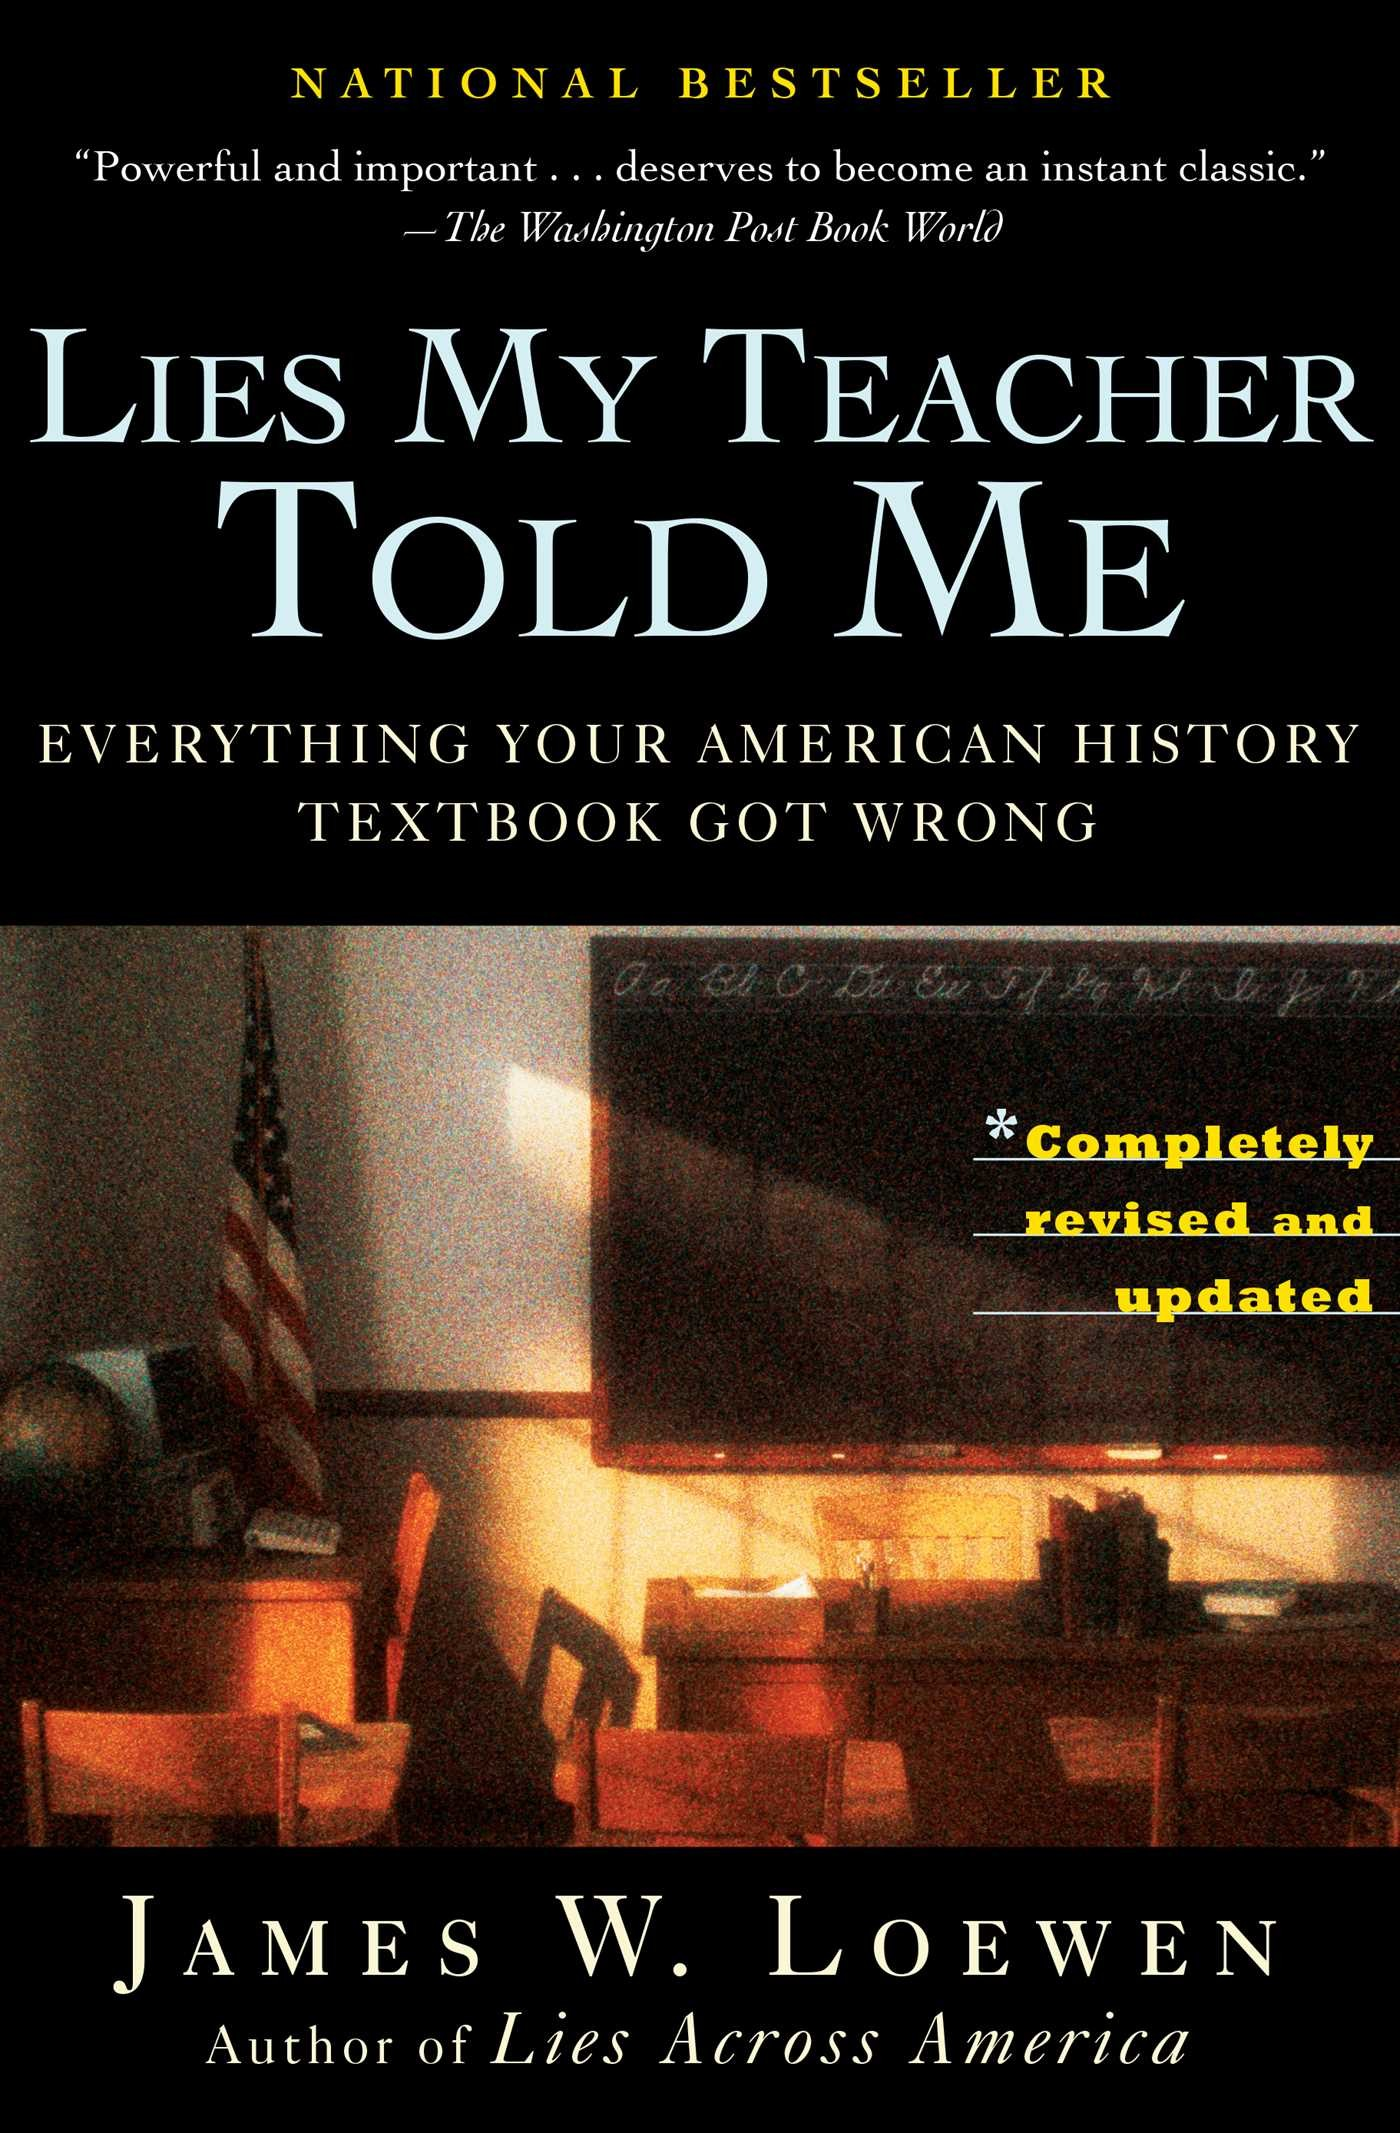 a review of the book lies my teacher told me by james loewen James loewen this study guide consists of approximately 60 pages of chapter summaries, quotes, character analysis, themes, and more - everything you need to sharpen your knowledge of lies my teacher told me.